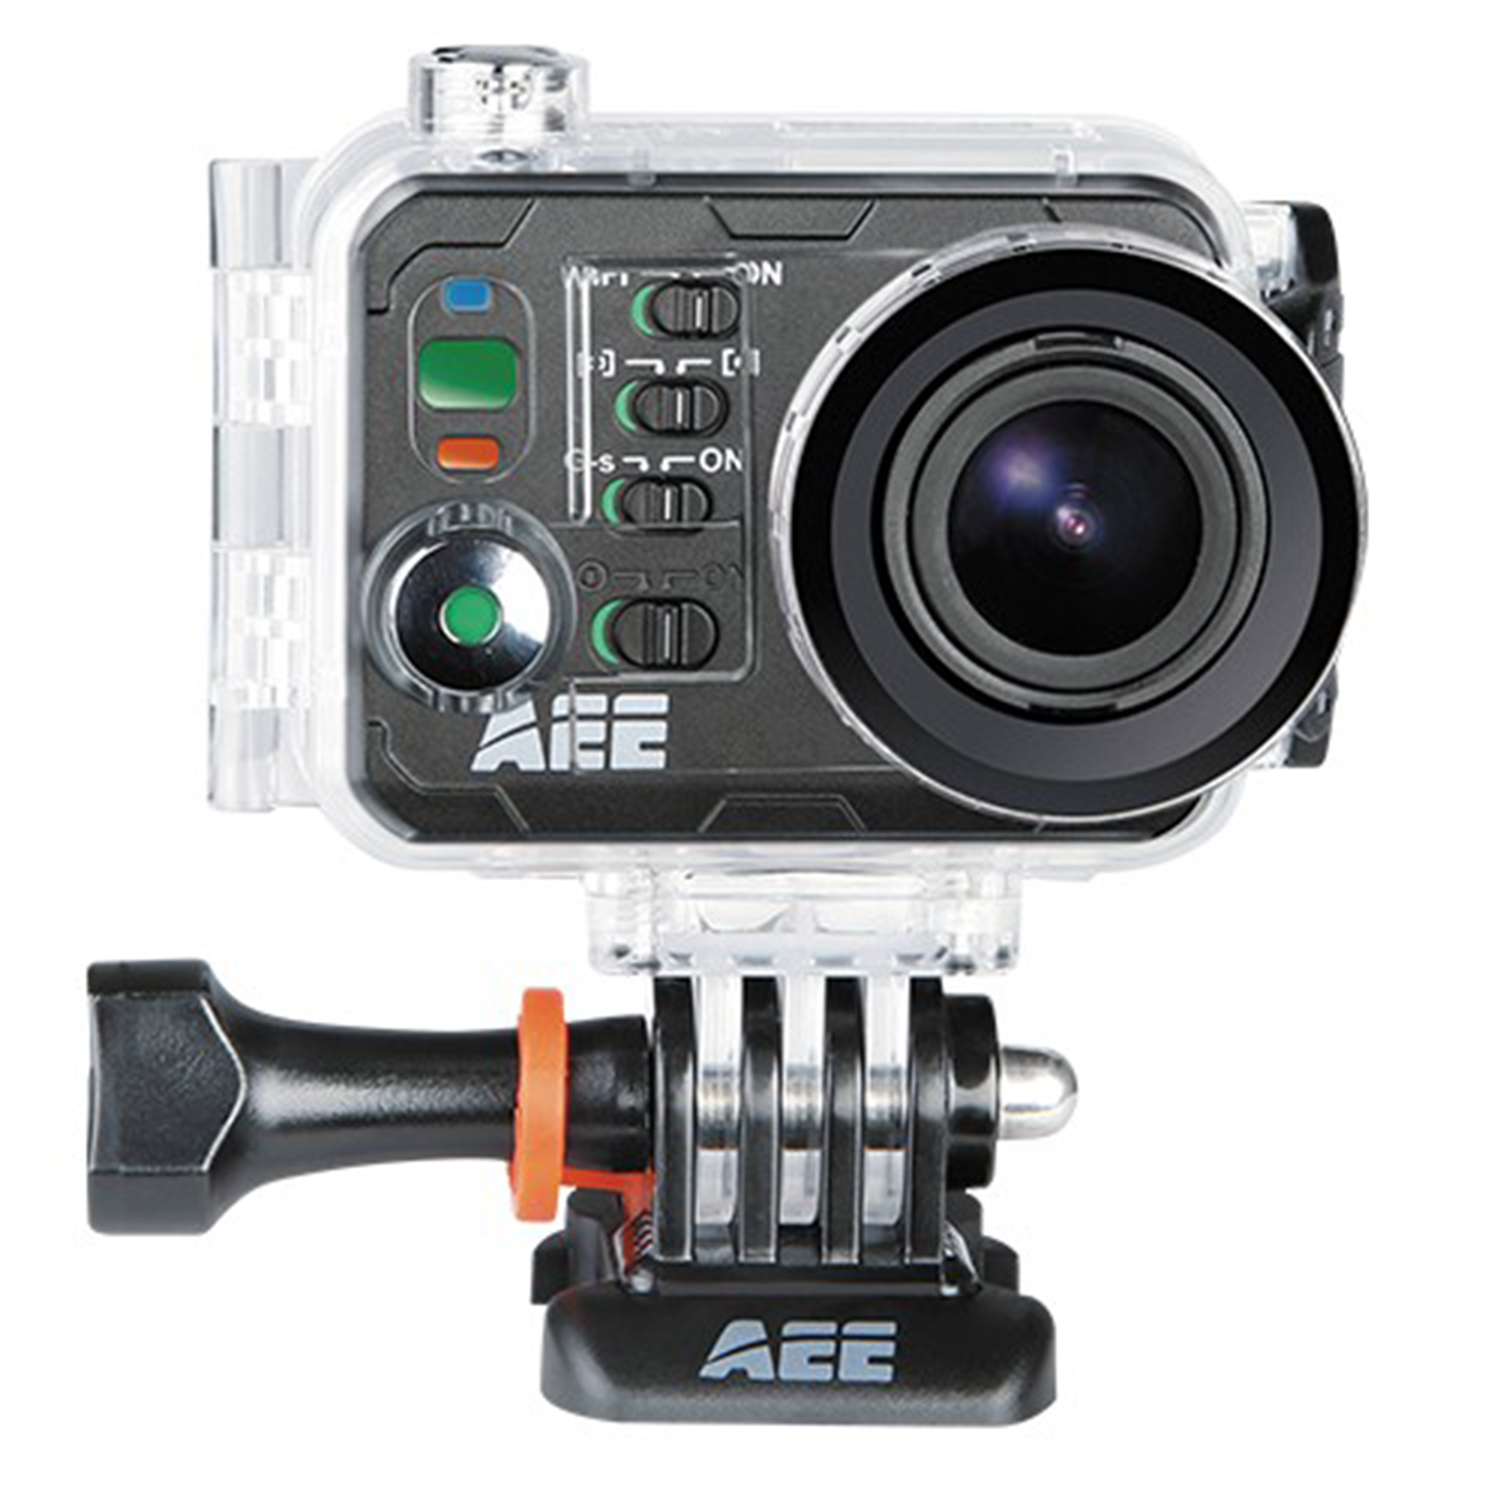 Image of AEE Magicam S70 HD 1080p Sports Action Waterproof Camera with WIFI - Black